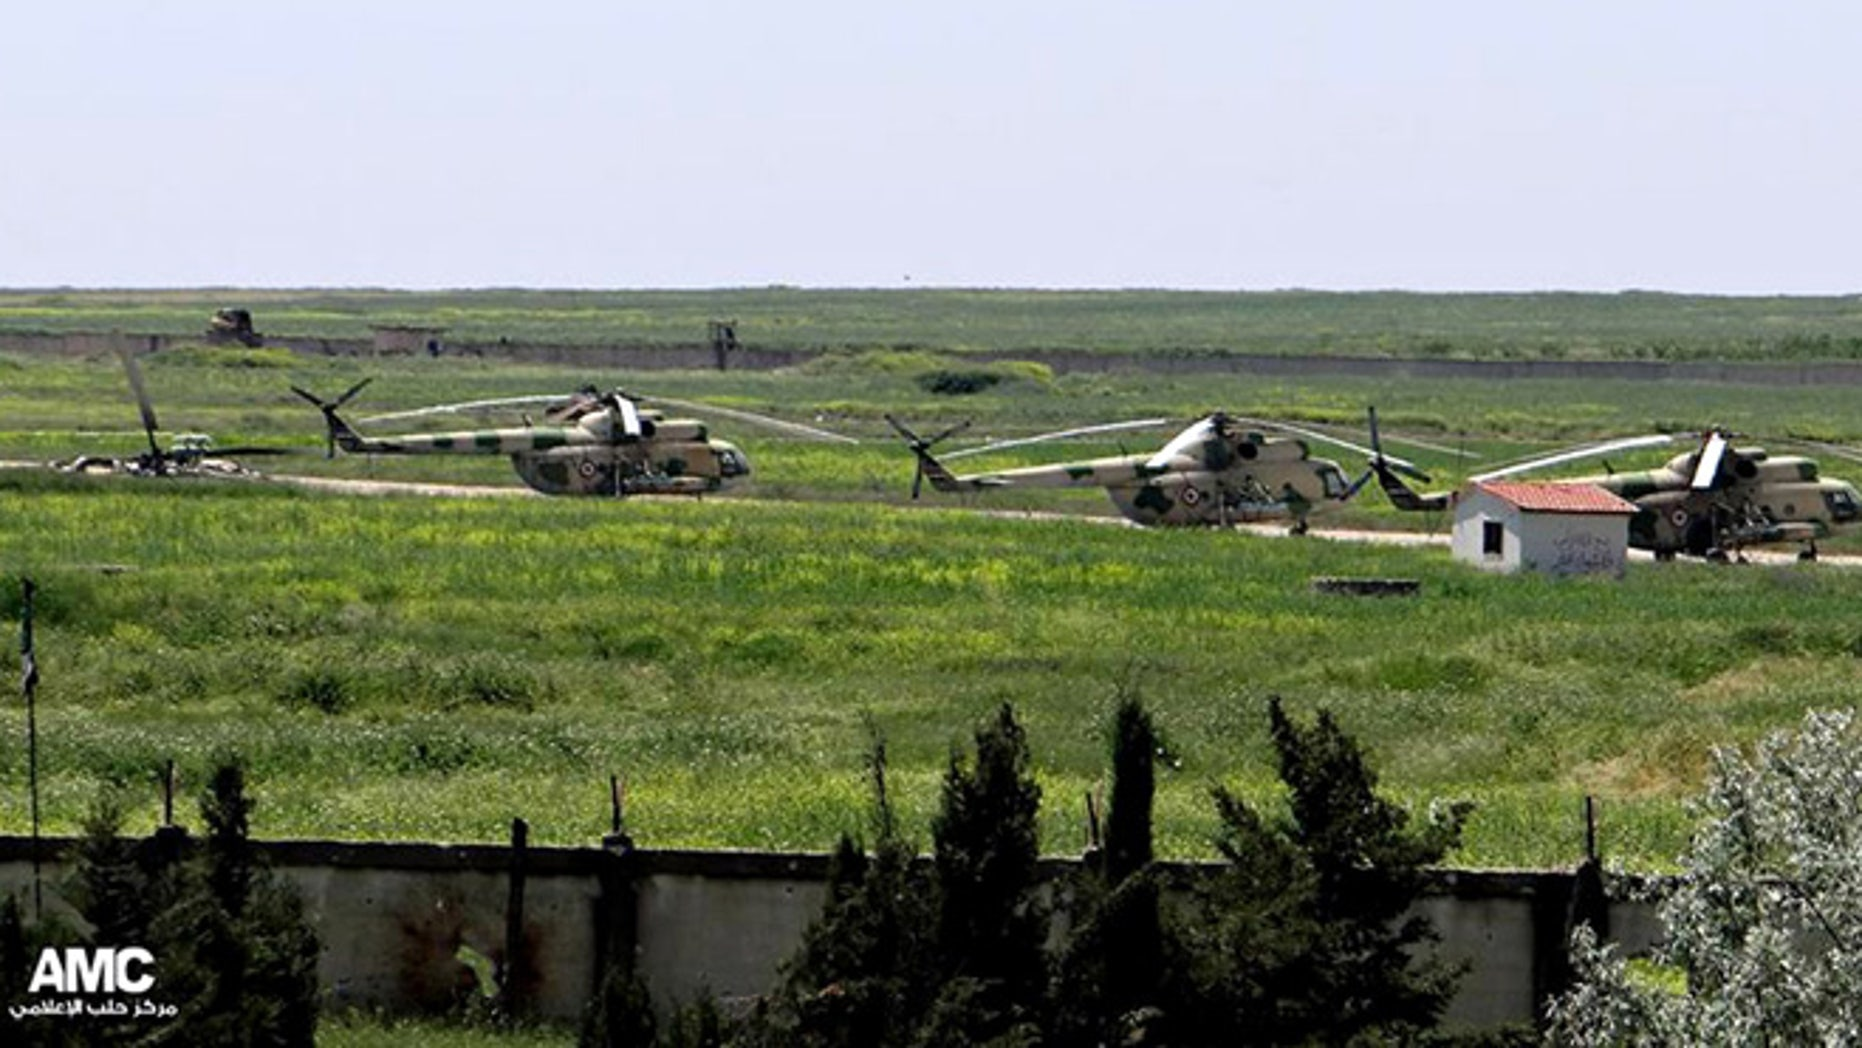 June 18, 2013: In this file photo, citizen journalism image provided by Aleppo Media Center AMC which has been authenticated based on its contents and other AP reporting, shows Syrian military helicopters at Mannagh air base in Aleppo province, Syria.